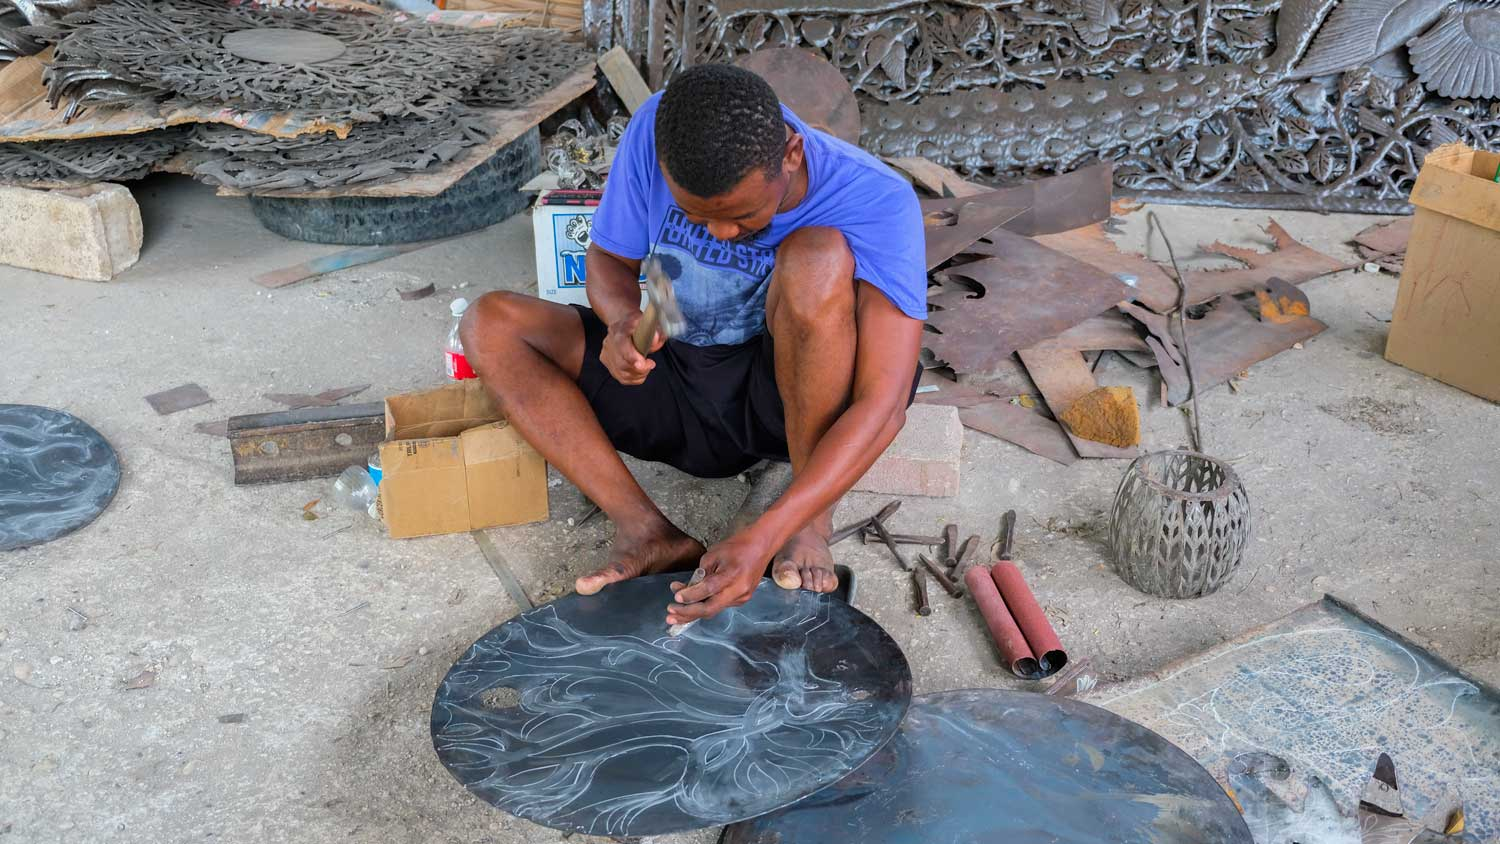 Blacksmith hammers design into metal artwork in Village Noailles, Haiti